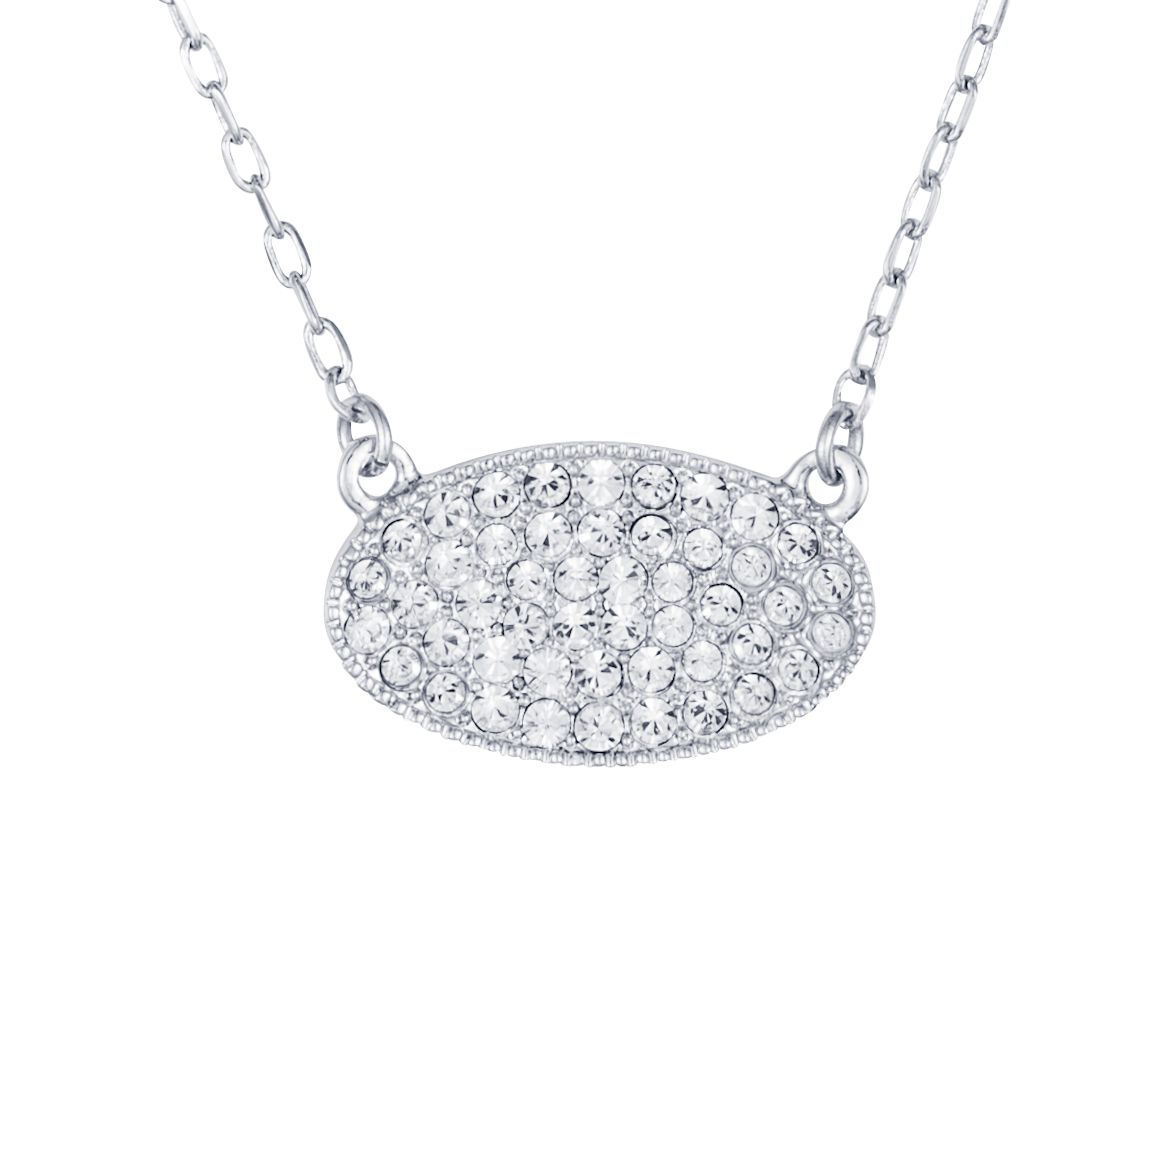 Rhodium plated titania pave set oval pendant